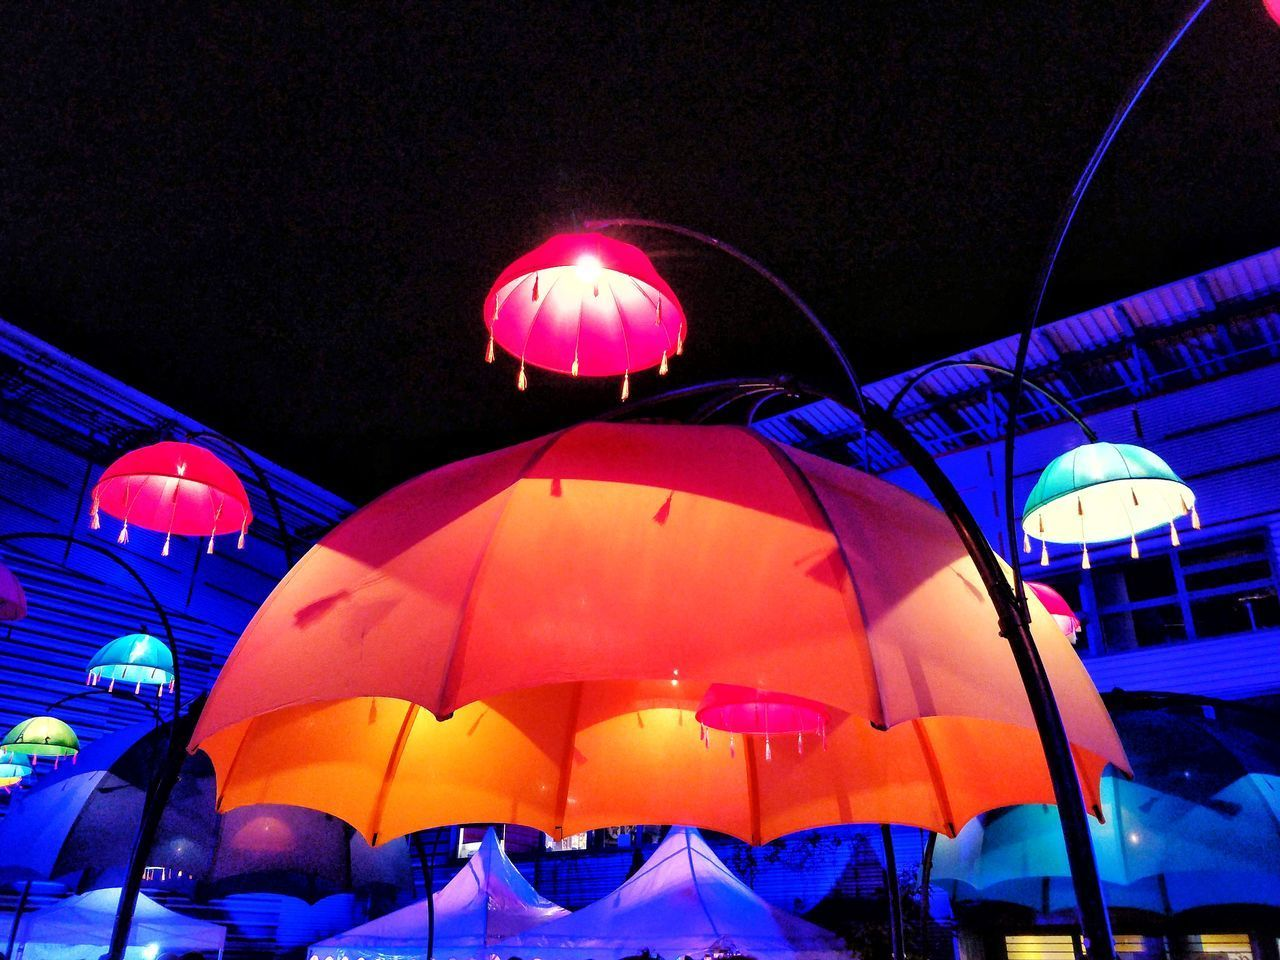 illuminated, lighting equipment, night, umbrella, protection, no people, security, multi colored, low angle view, hanging, outdoors, celebration, decoration, nature, parasol, design, pattern, architecture, purple